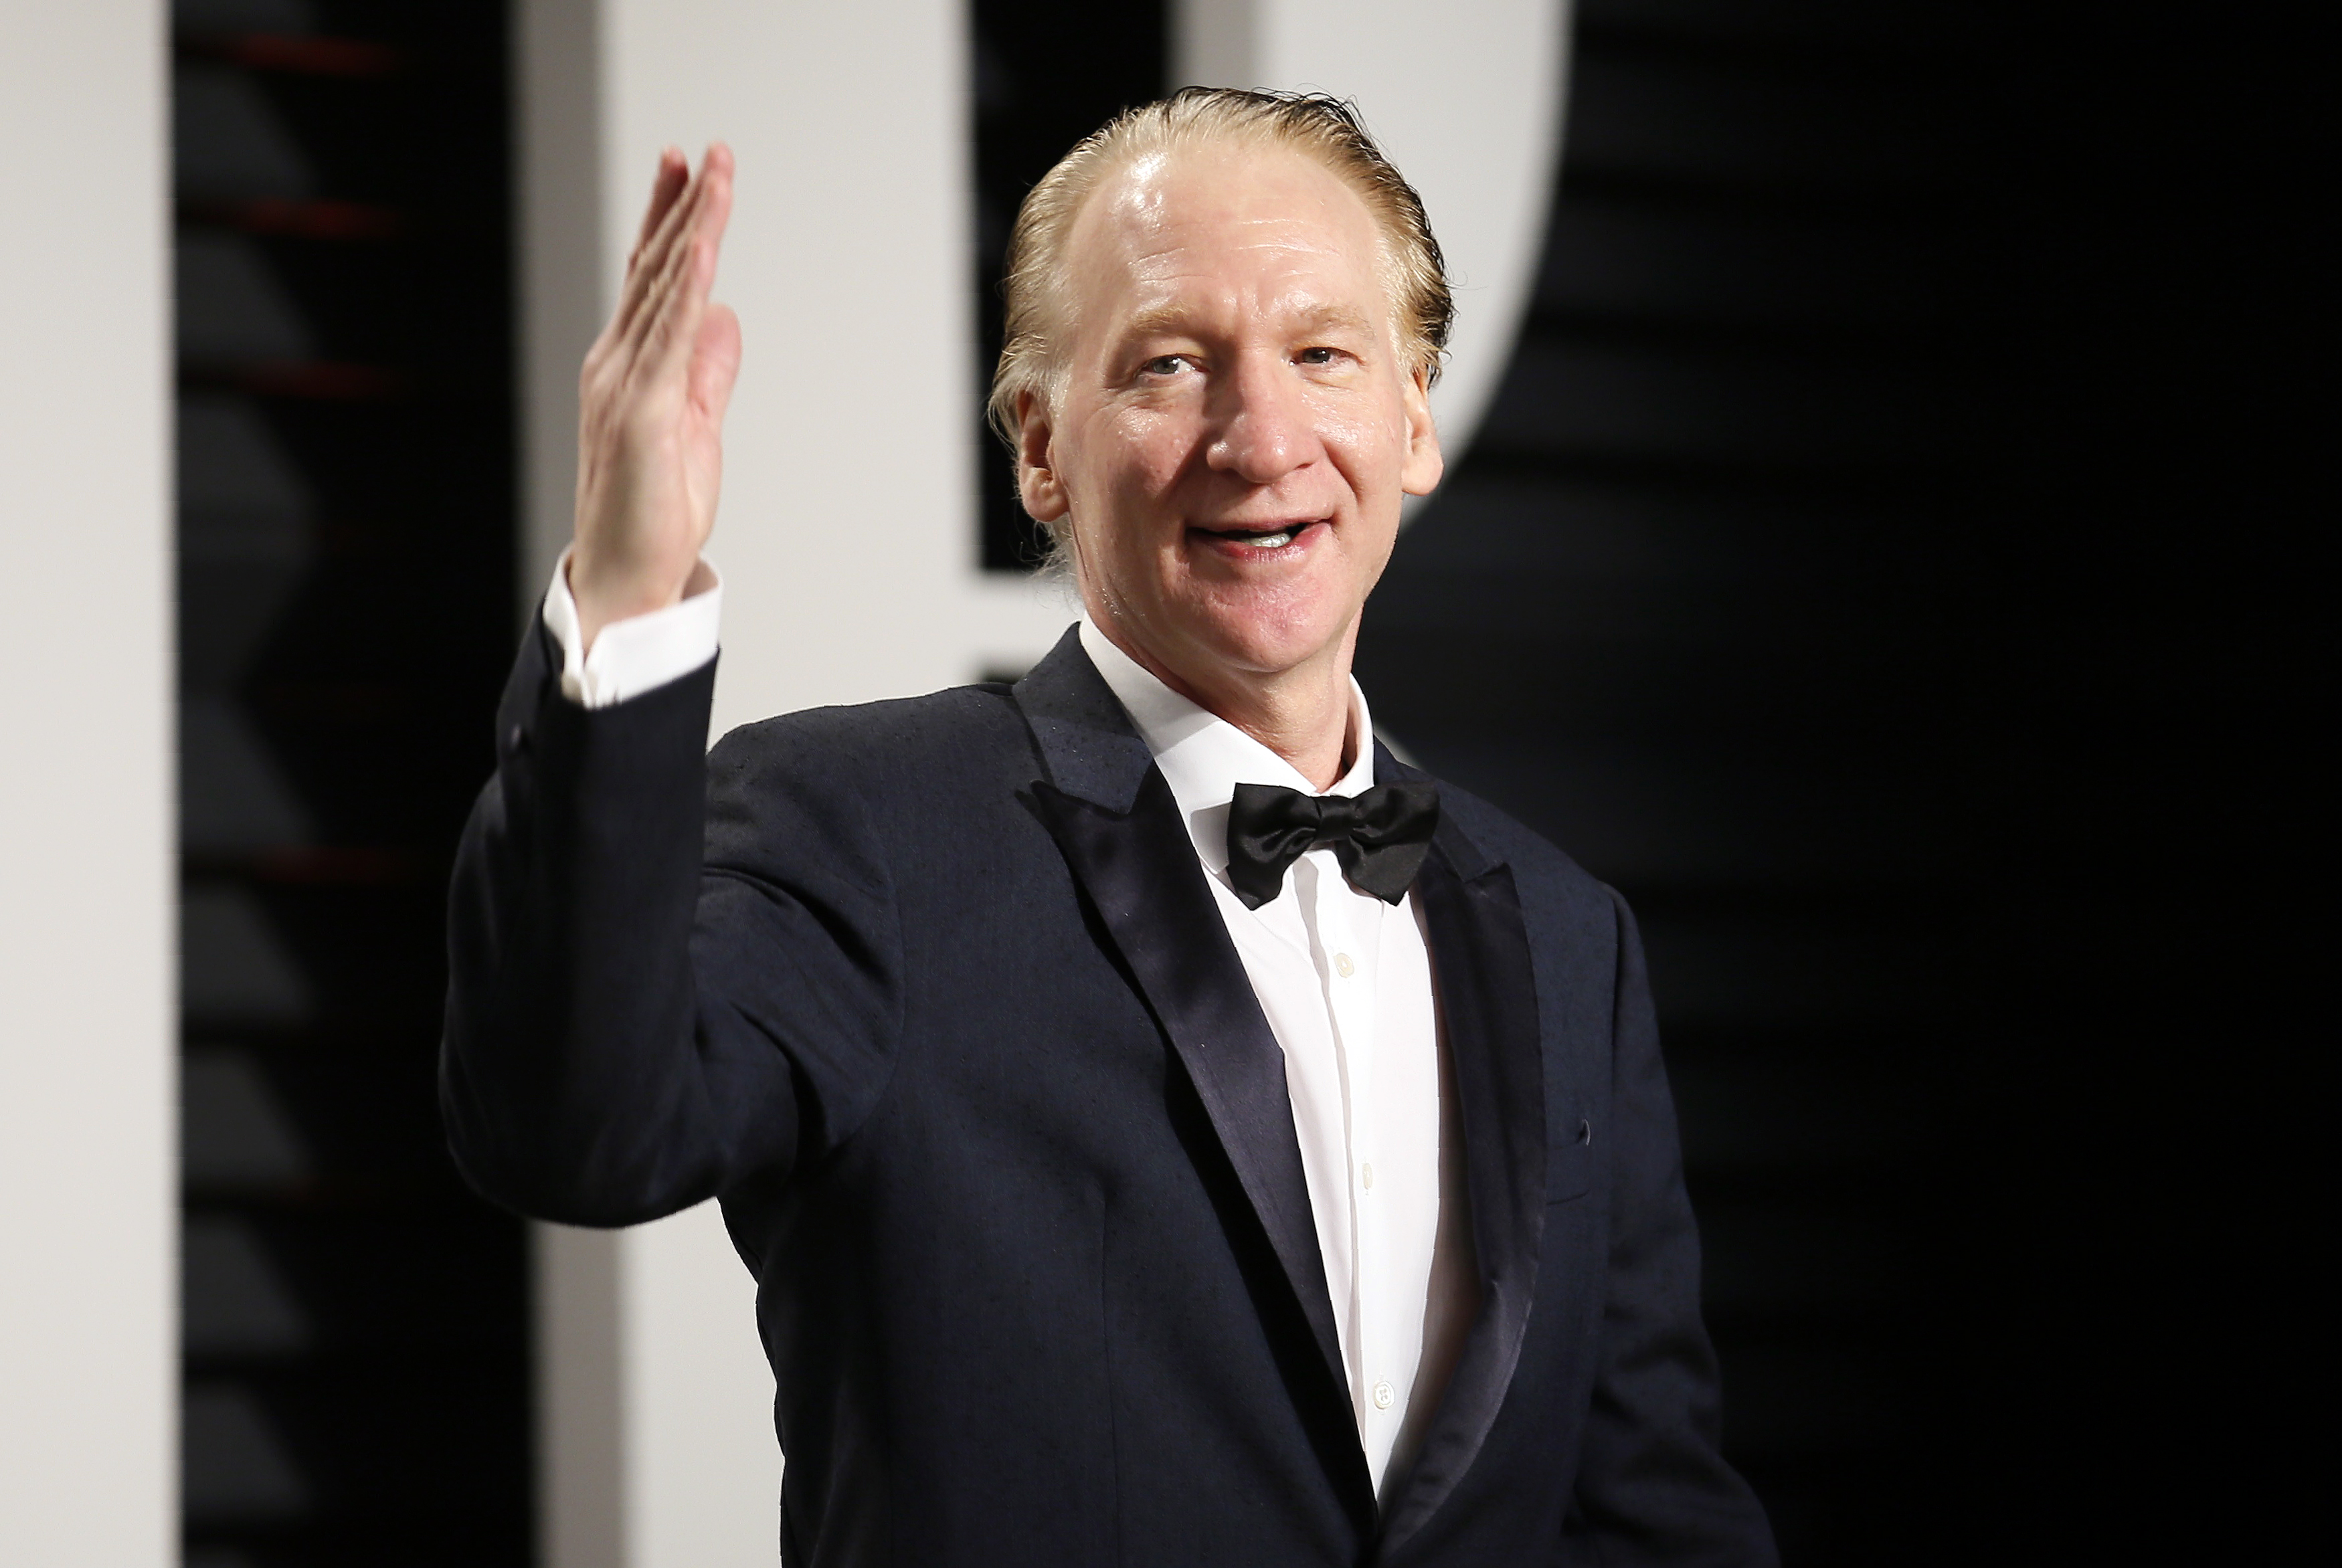 8) Bill Maher received a ton of criticism for saying the N-word casually on his nighttime HBO show. (REUTERS/Danny Moloshok)